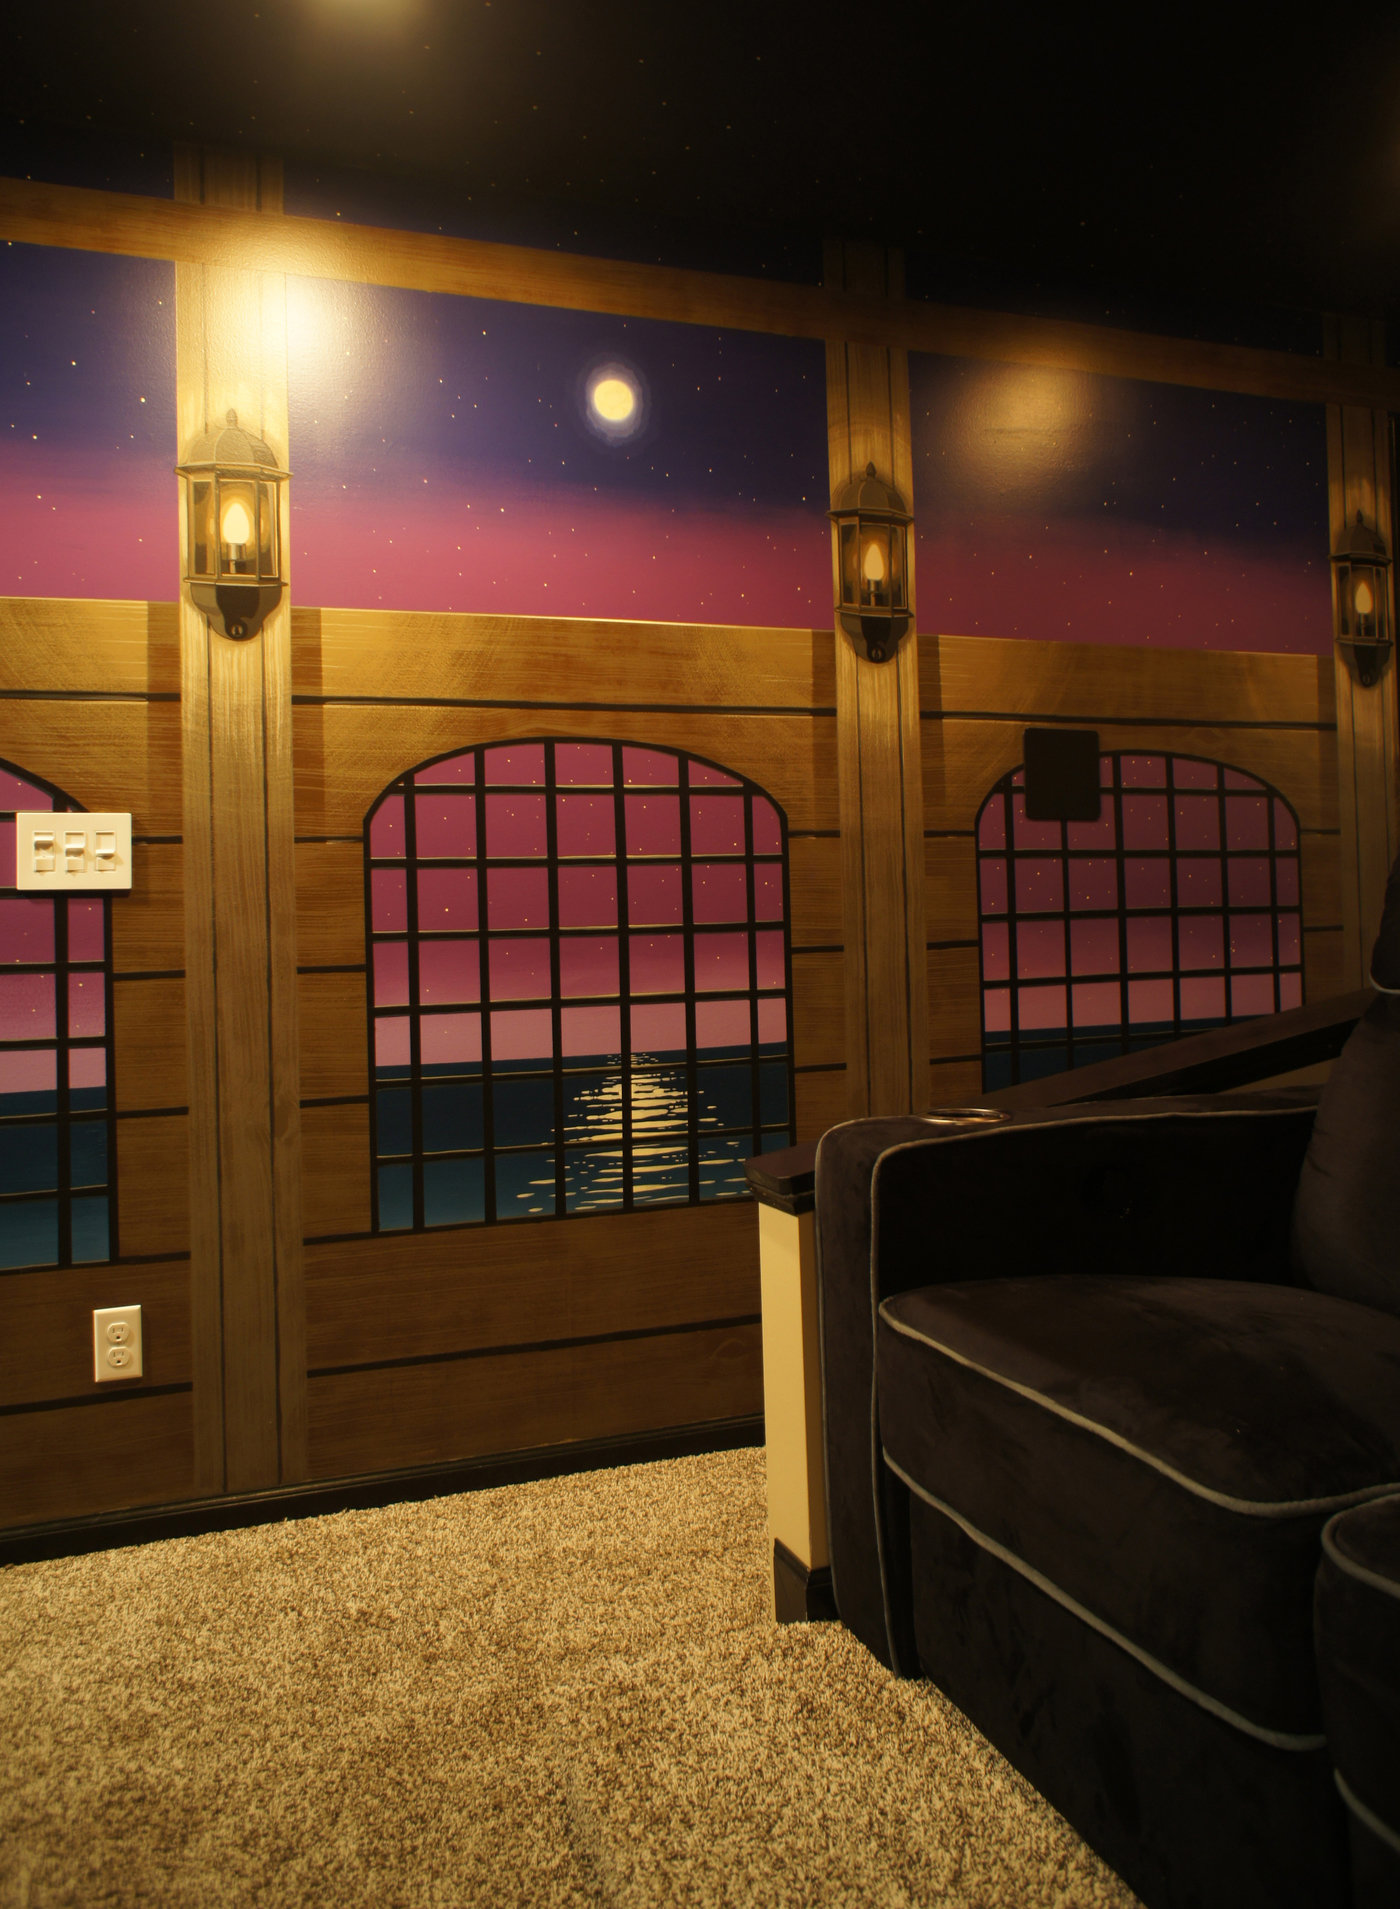 Theatre Room Mural Pirate Ship Theme By Jeremy Jarvis